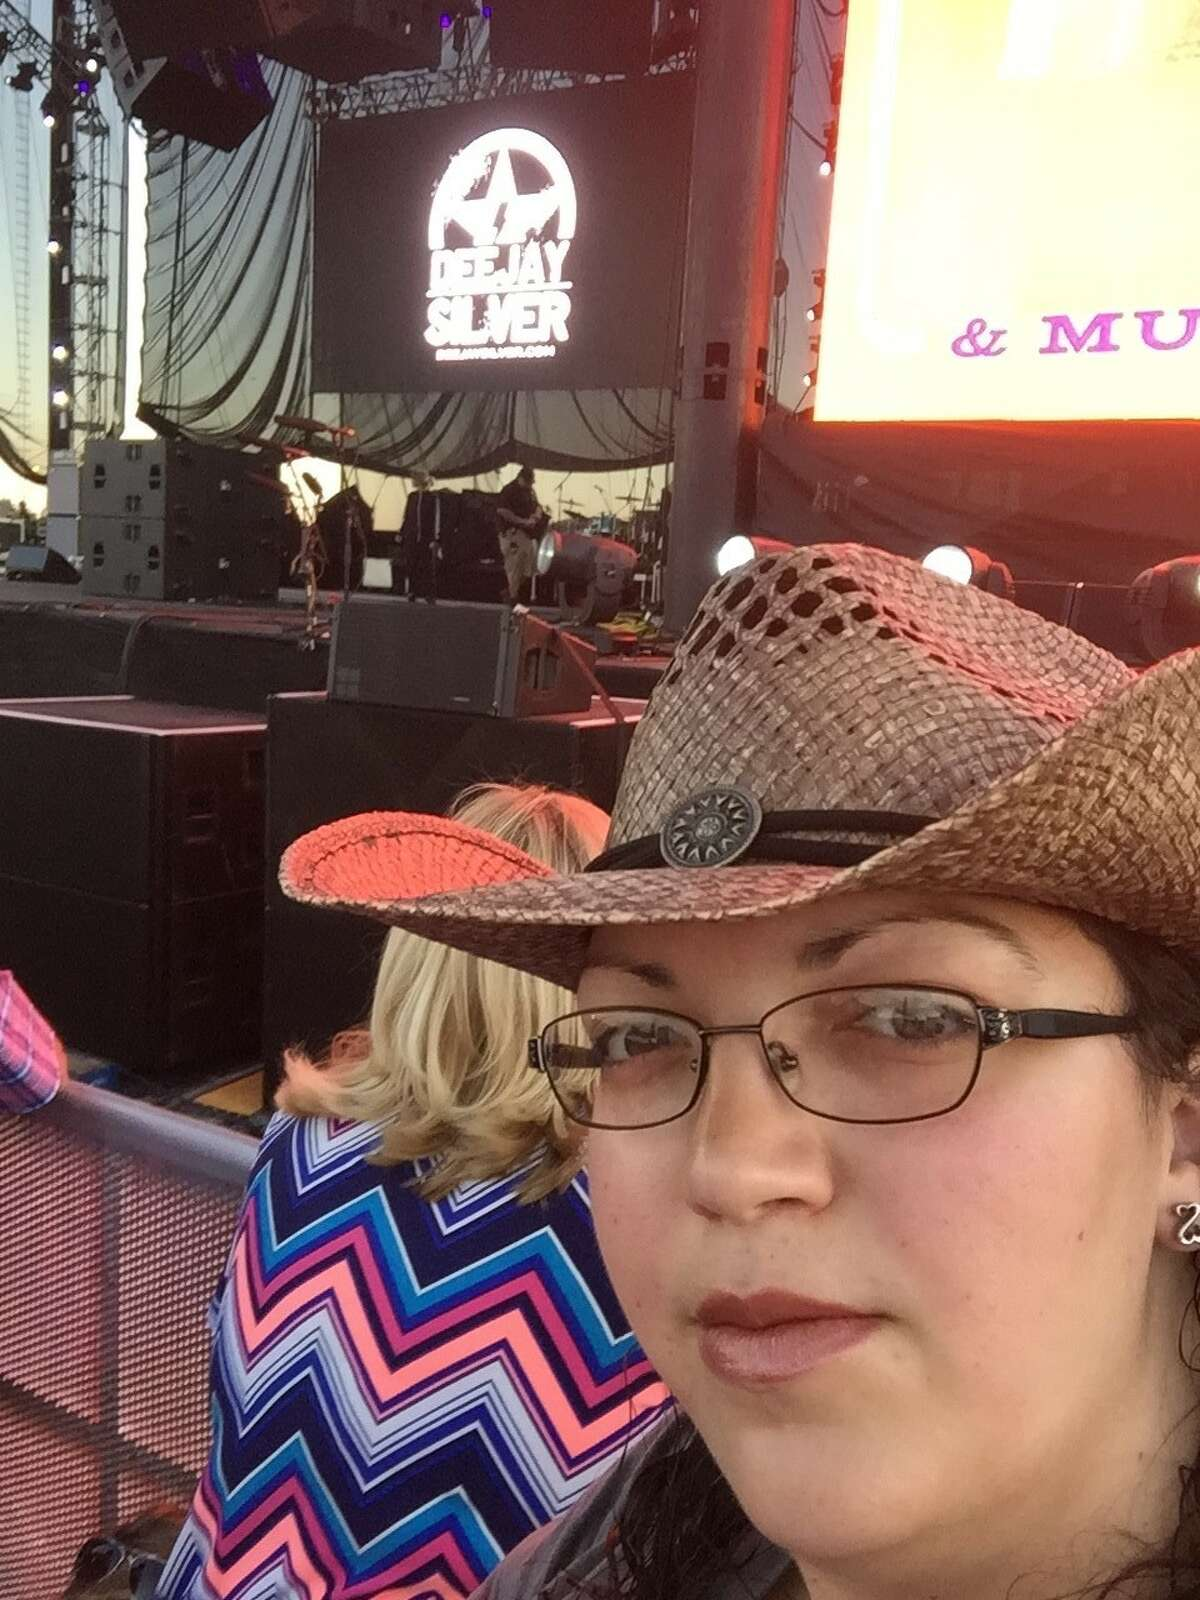 Alicia Bemis of Clifton Park described what she saw during a mass shooting at a country music concert in Las Vegas on Oct. 1, 2017. Bemis went to all three days of Route 91 Festival. (Photo provided by Alicia Bemis)